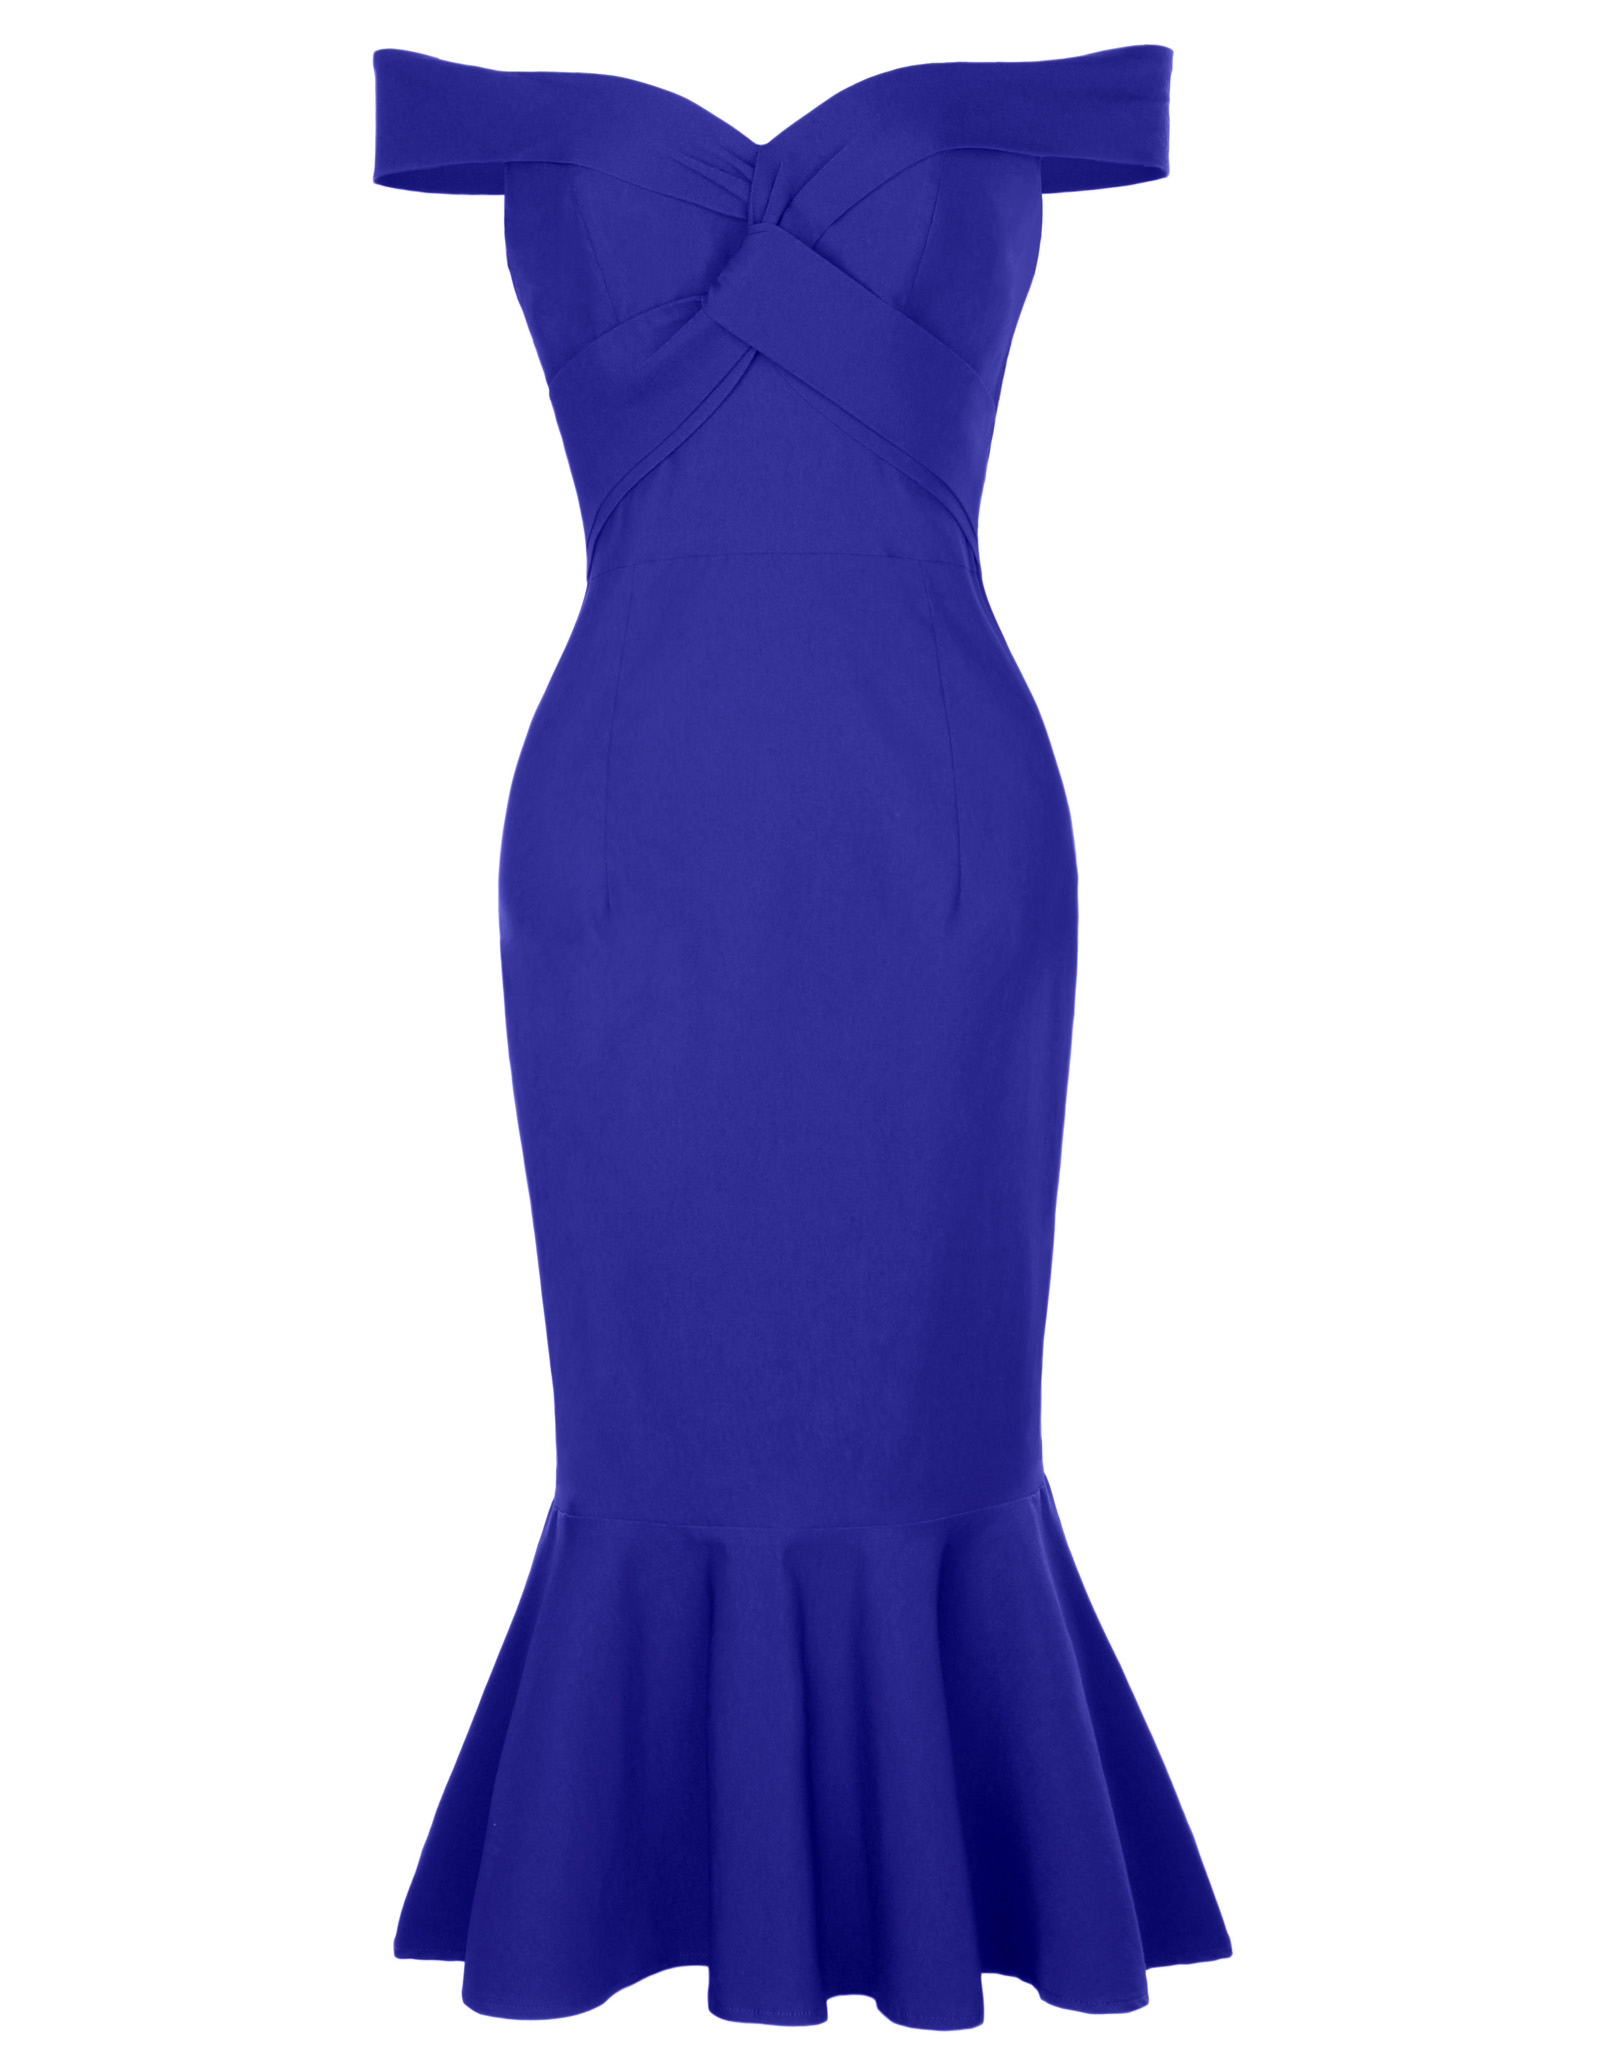 Belle Poque Women Retro Sheath Bodycon Dresses 50s Vintage Off Shoulder  V-Neck Hips-Wrapped Pencil Robe Mermaid Hemline Dress fbf2edd9bf5b